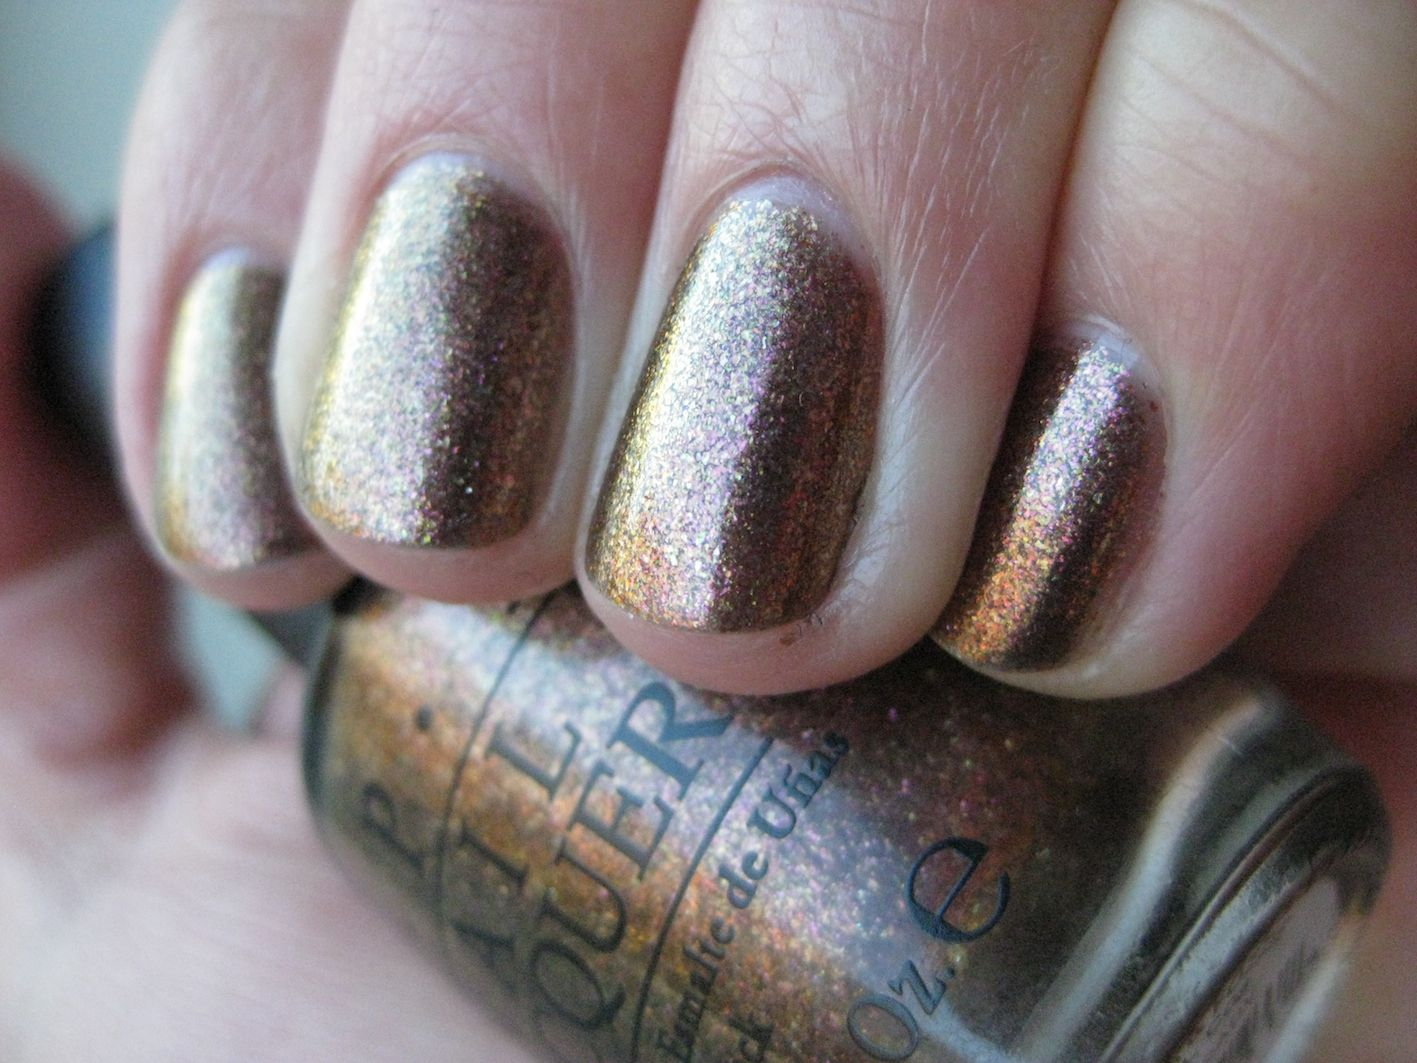 OPI Warm and Fozzie